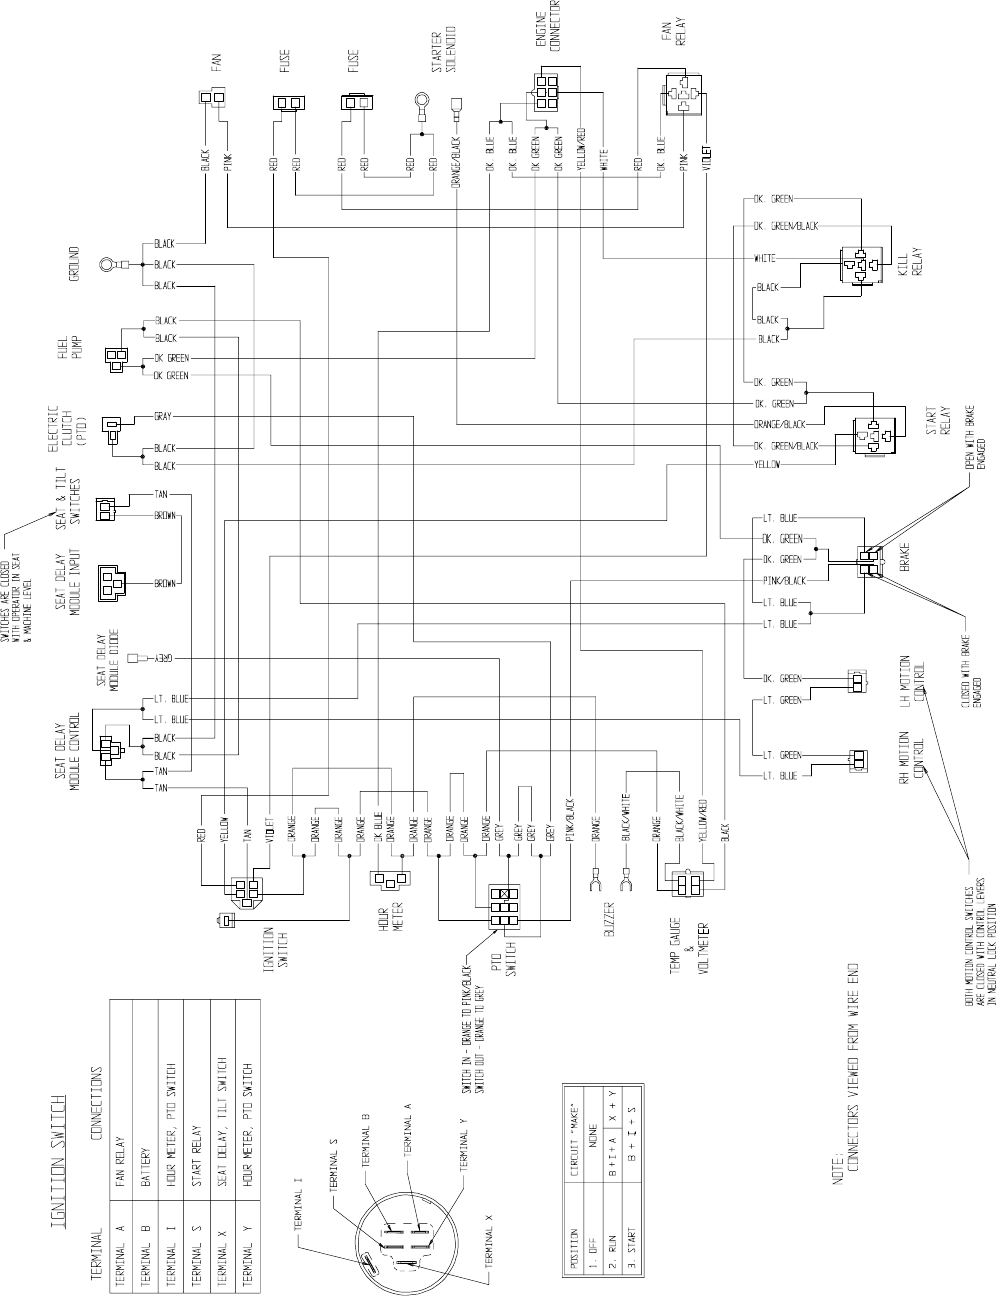 fe0094d5 b49c 4e15 9446 11a96067f628 bg35 hd wallpapers wiring diagram for exmark lazer z 3dhdhddesignf tk  at soozxer.org